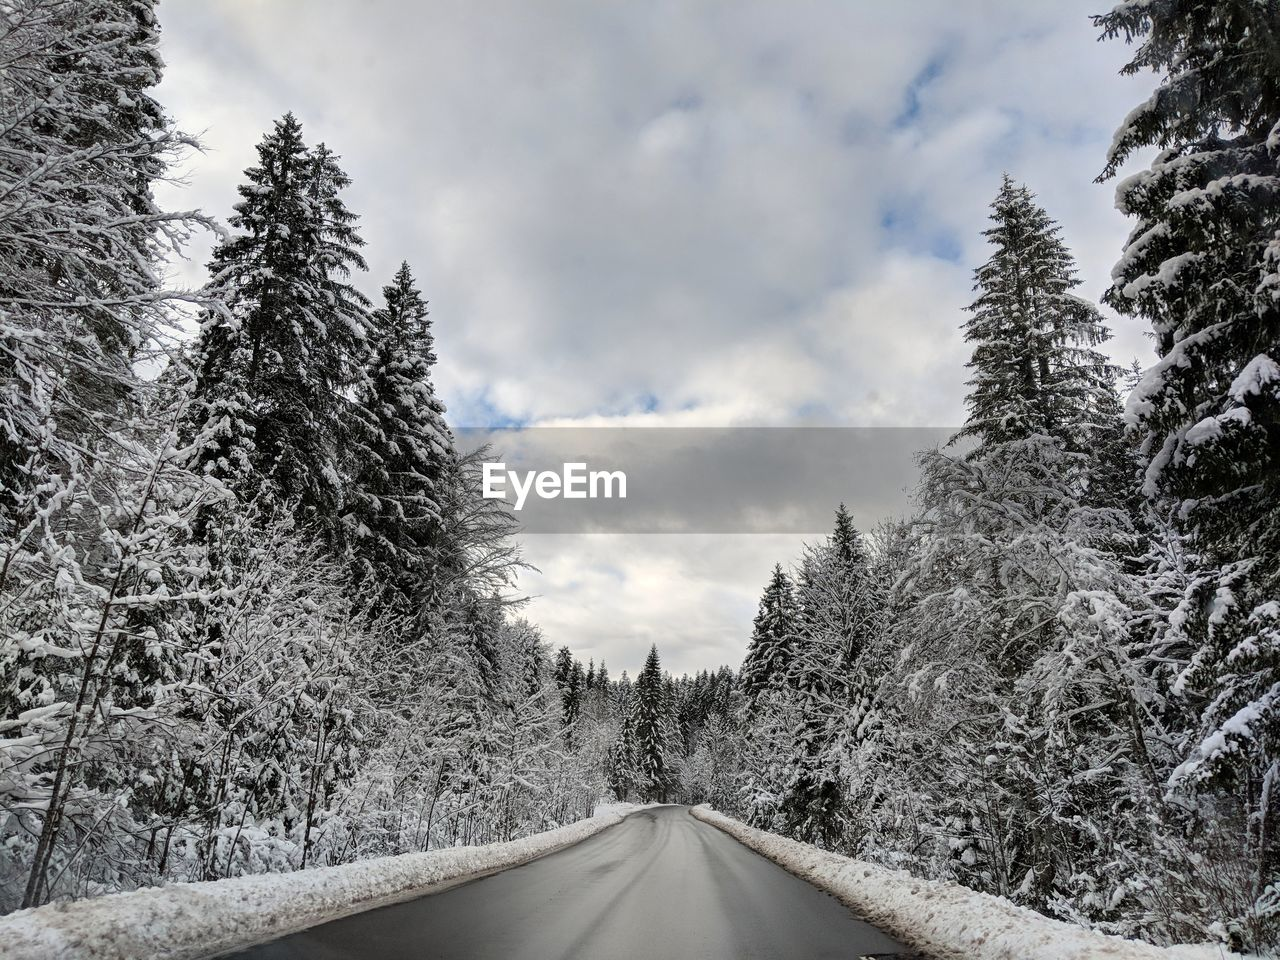 tree, the way forward, nature, snow, road, winter, no people, cold temperature, sky, weather, cloud - sky, day, beauty in nature, tranquility, transportation, scenics, growth, landscape, outdoors, forest